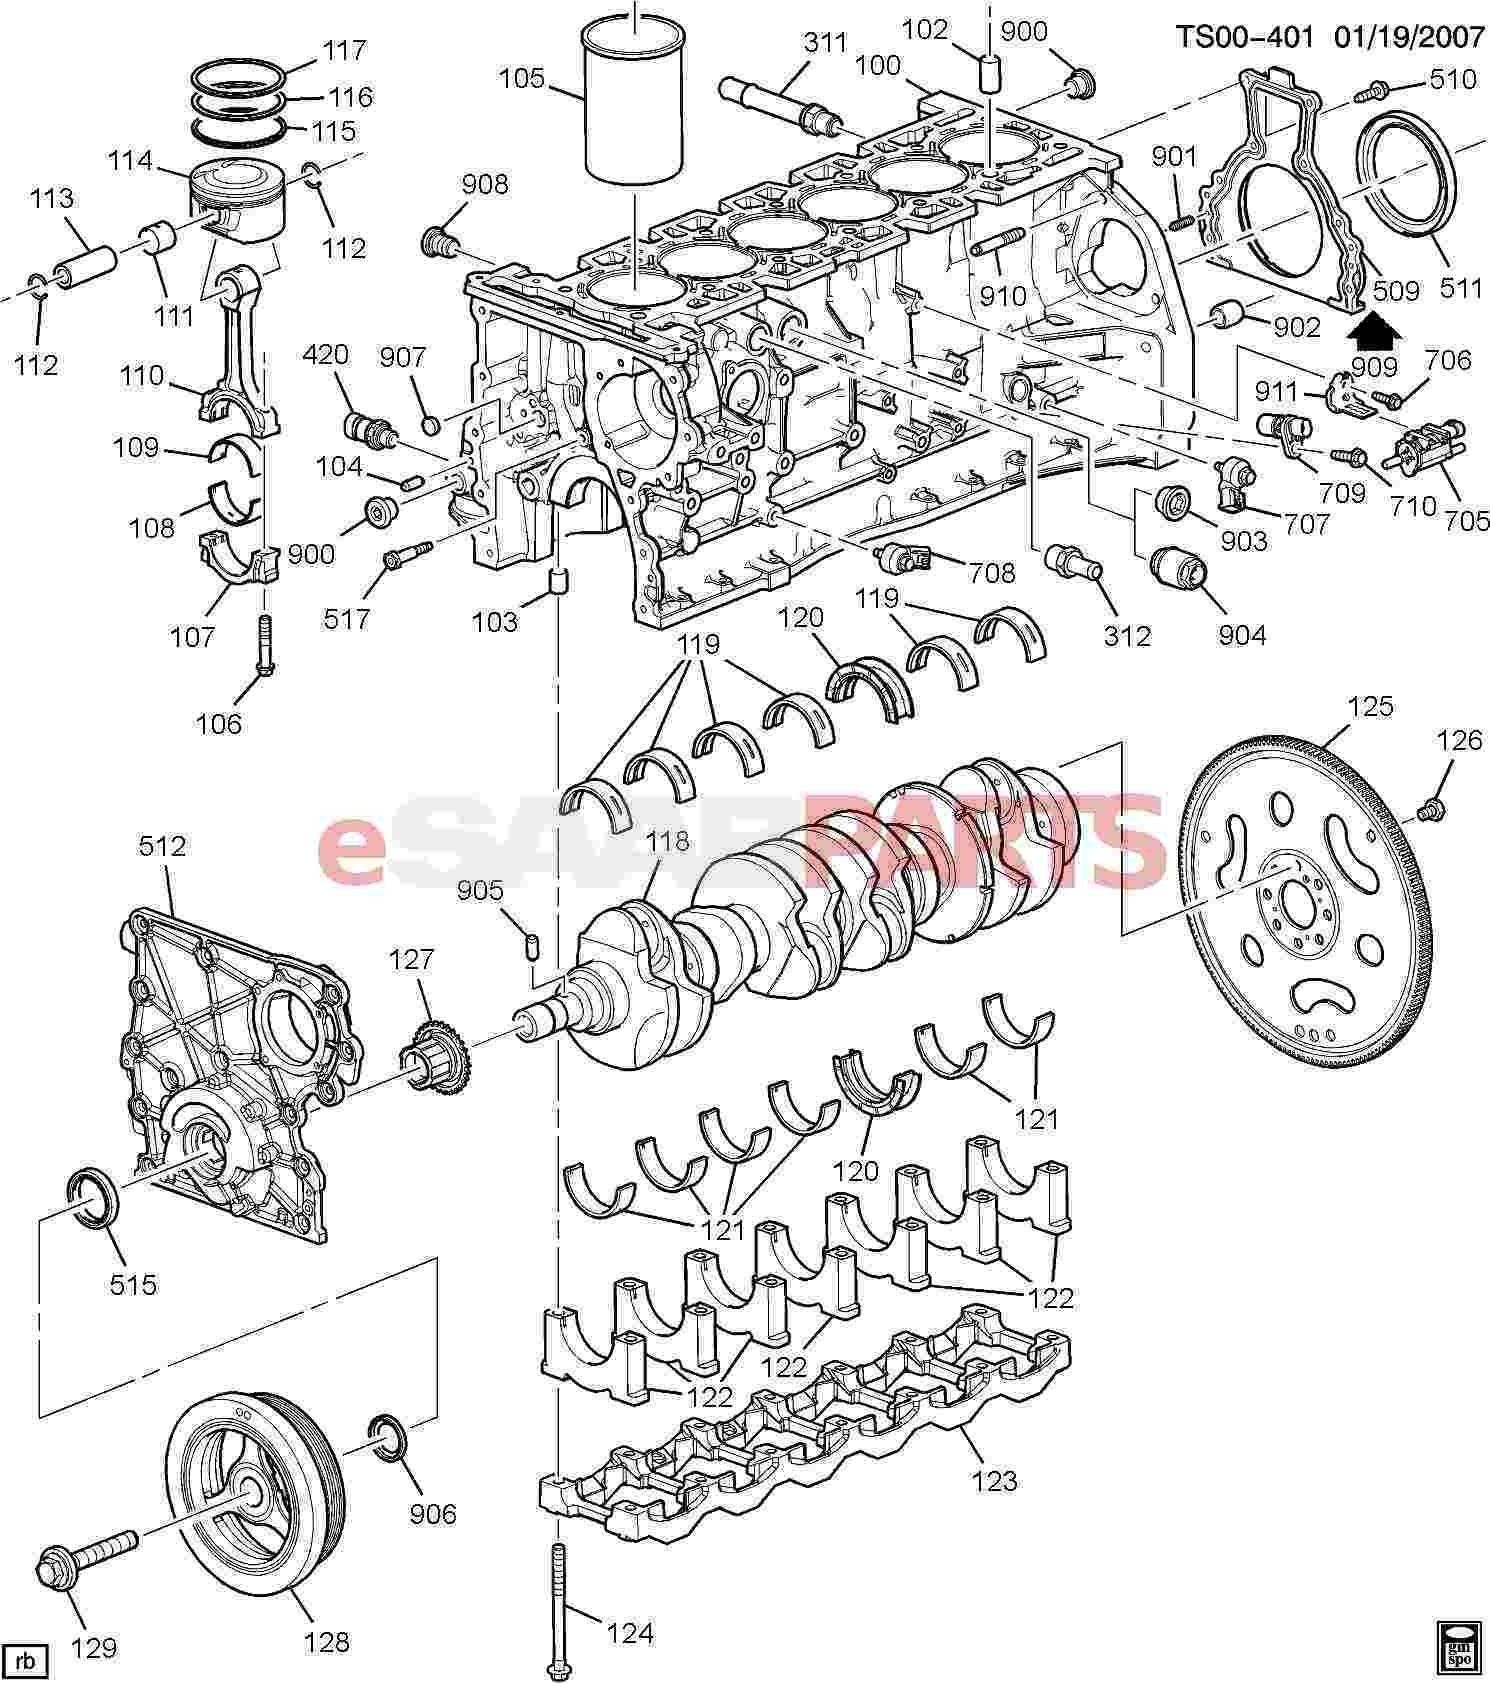 2003 Lincoln Ls V8 Engine Diagram How To Install Replace Spark Plugs 4 6l Chevy Blazer